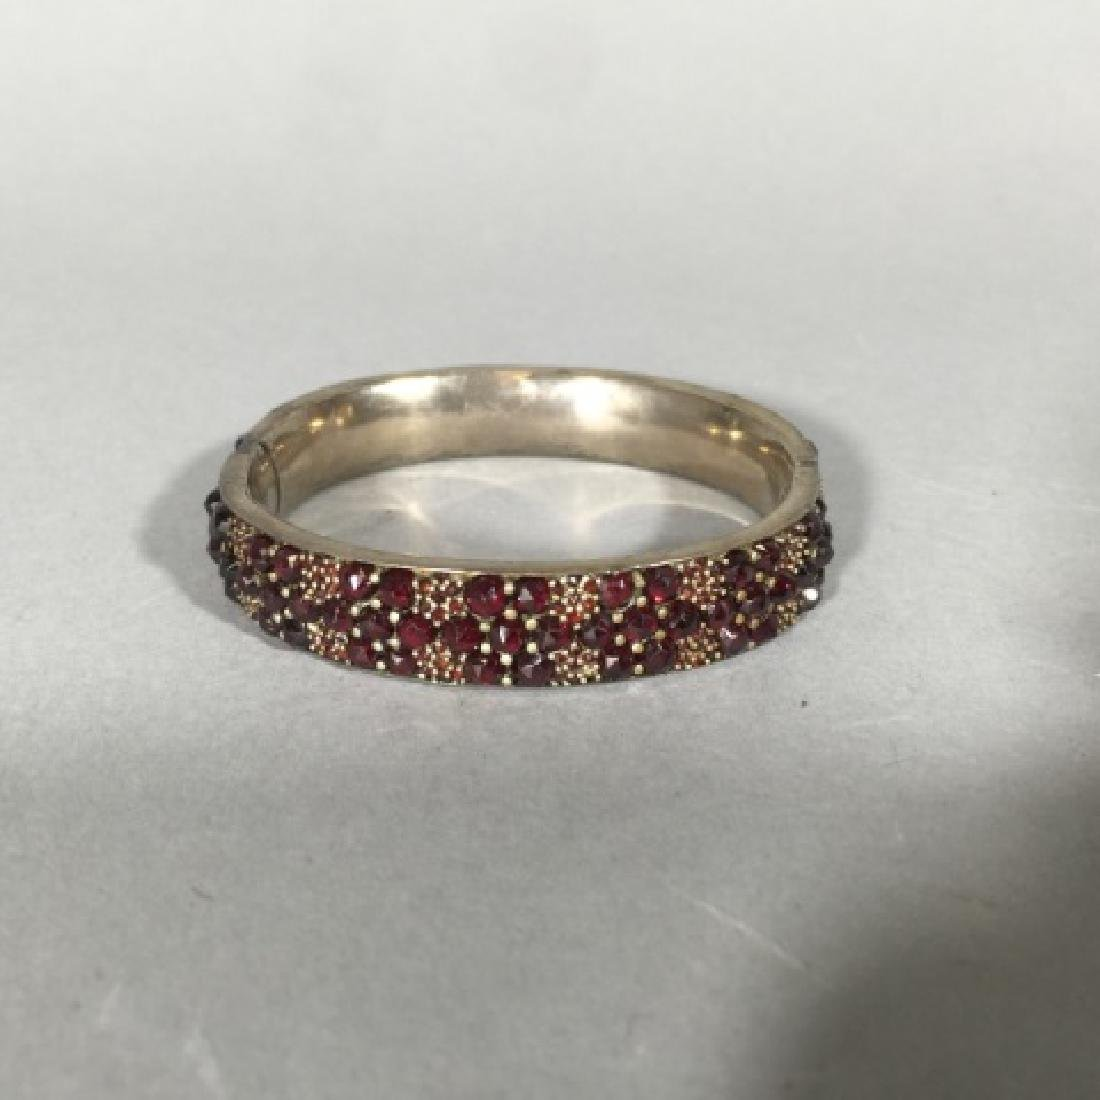 Antique 19th C Rose Cut Garnet Bangle Bracelet - 5